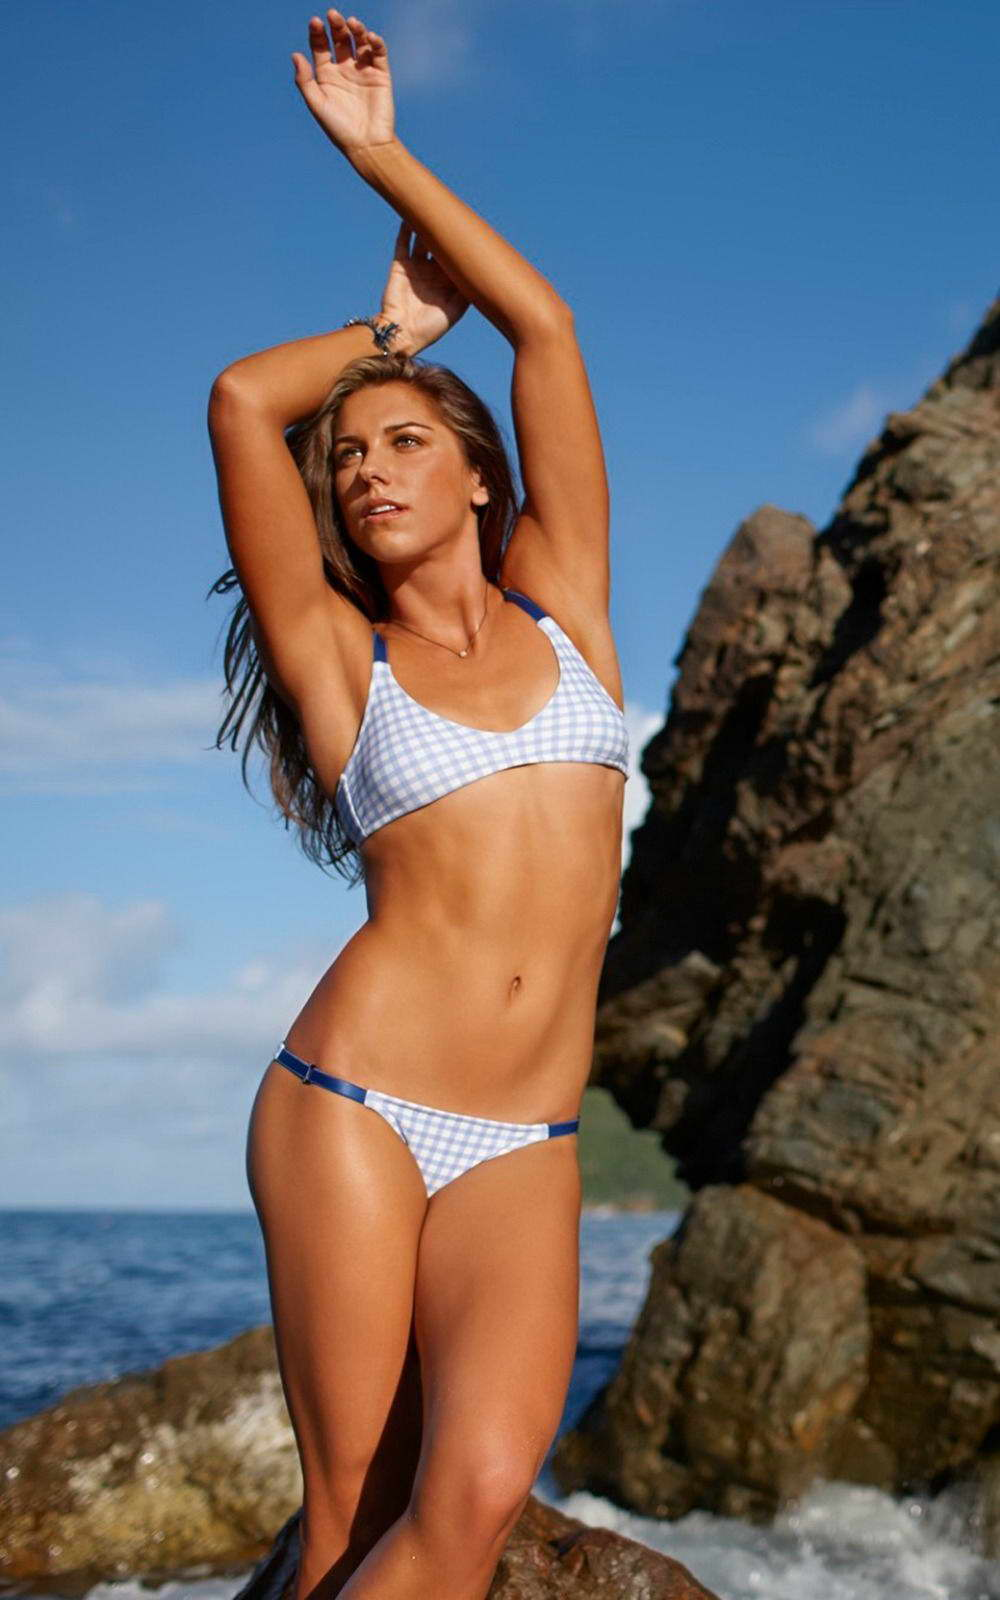 15829 Alex Morgan football star Wall Print POSTER AU